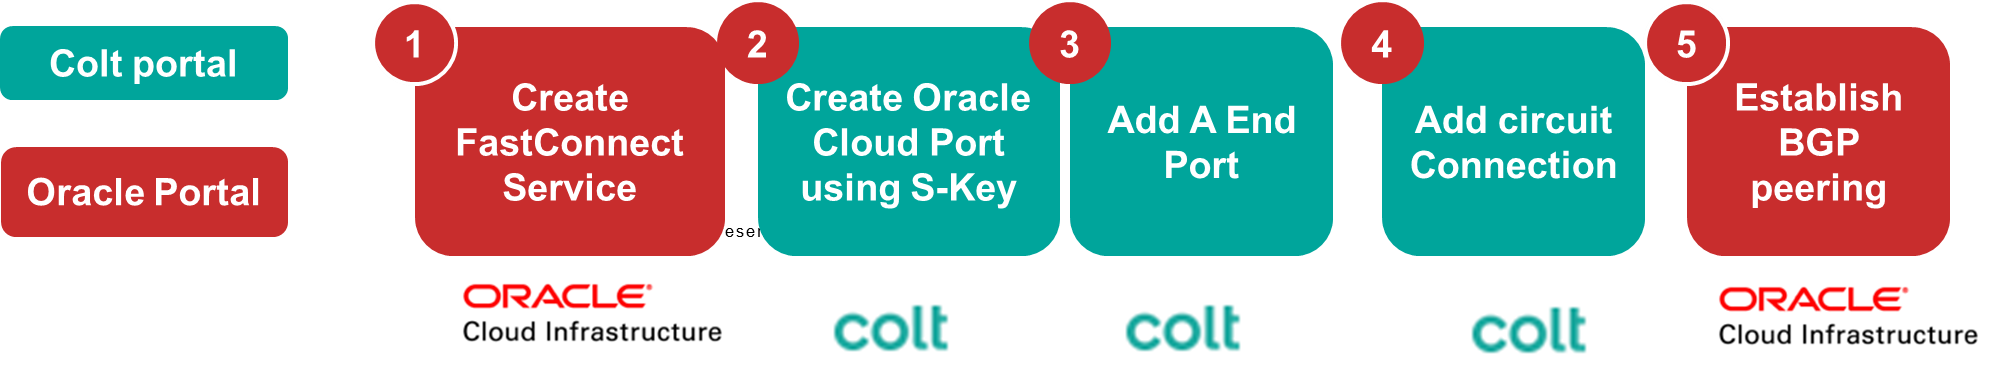 Oracle FastConnect Customer Journey